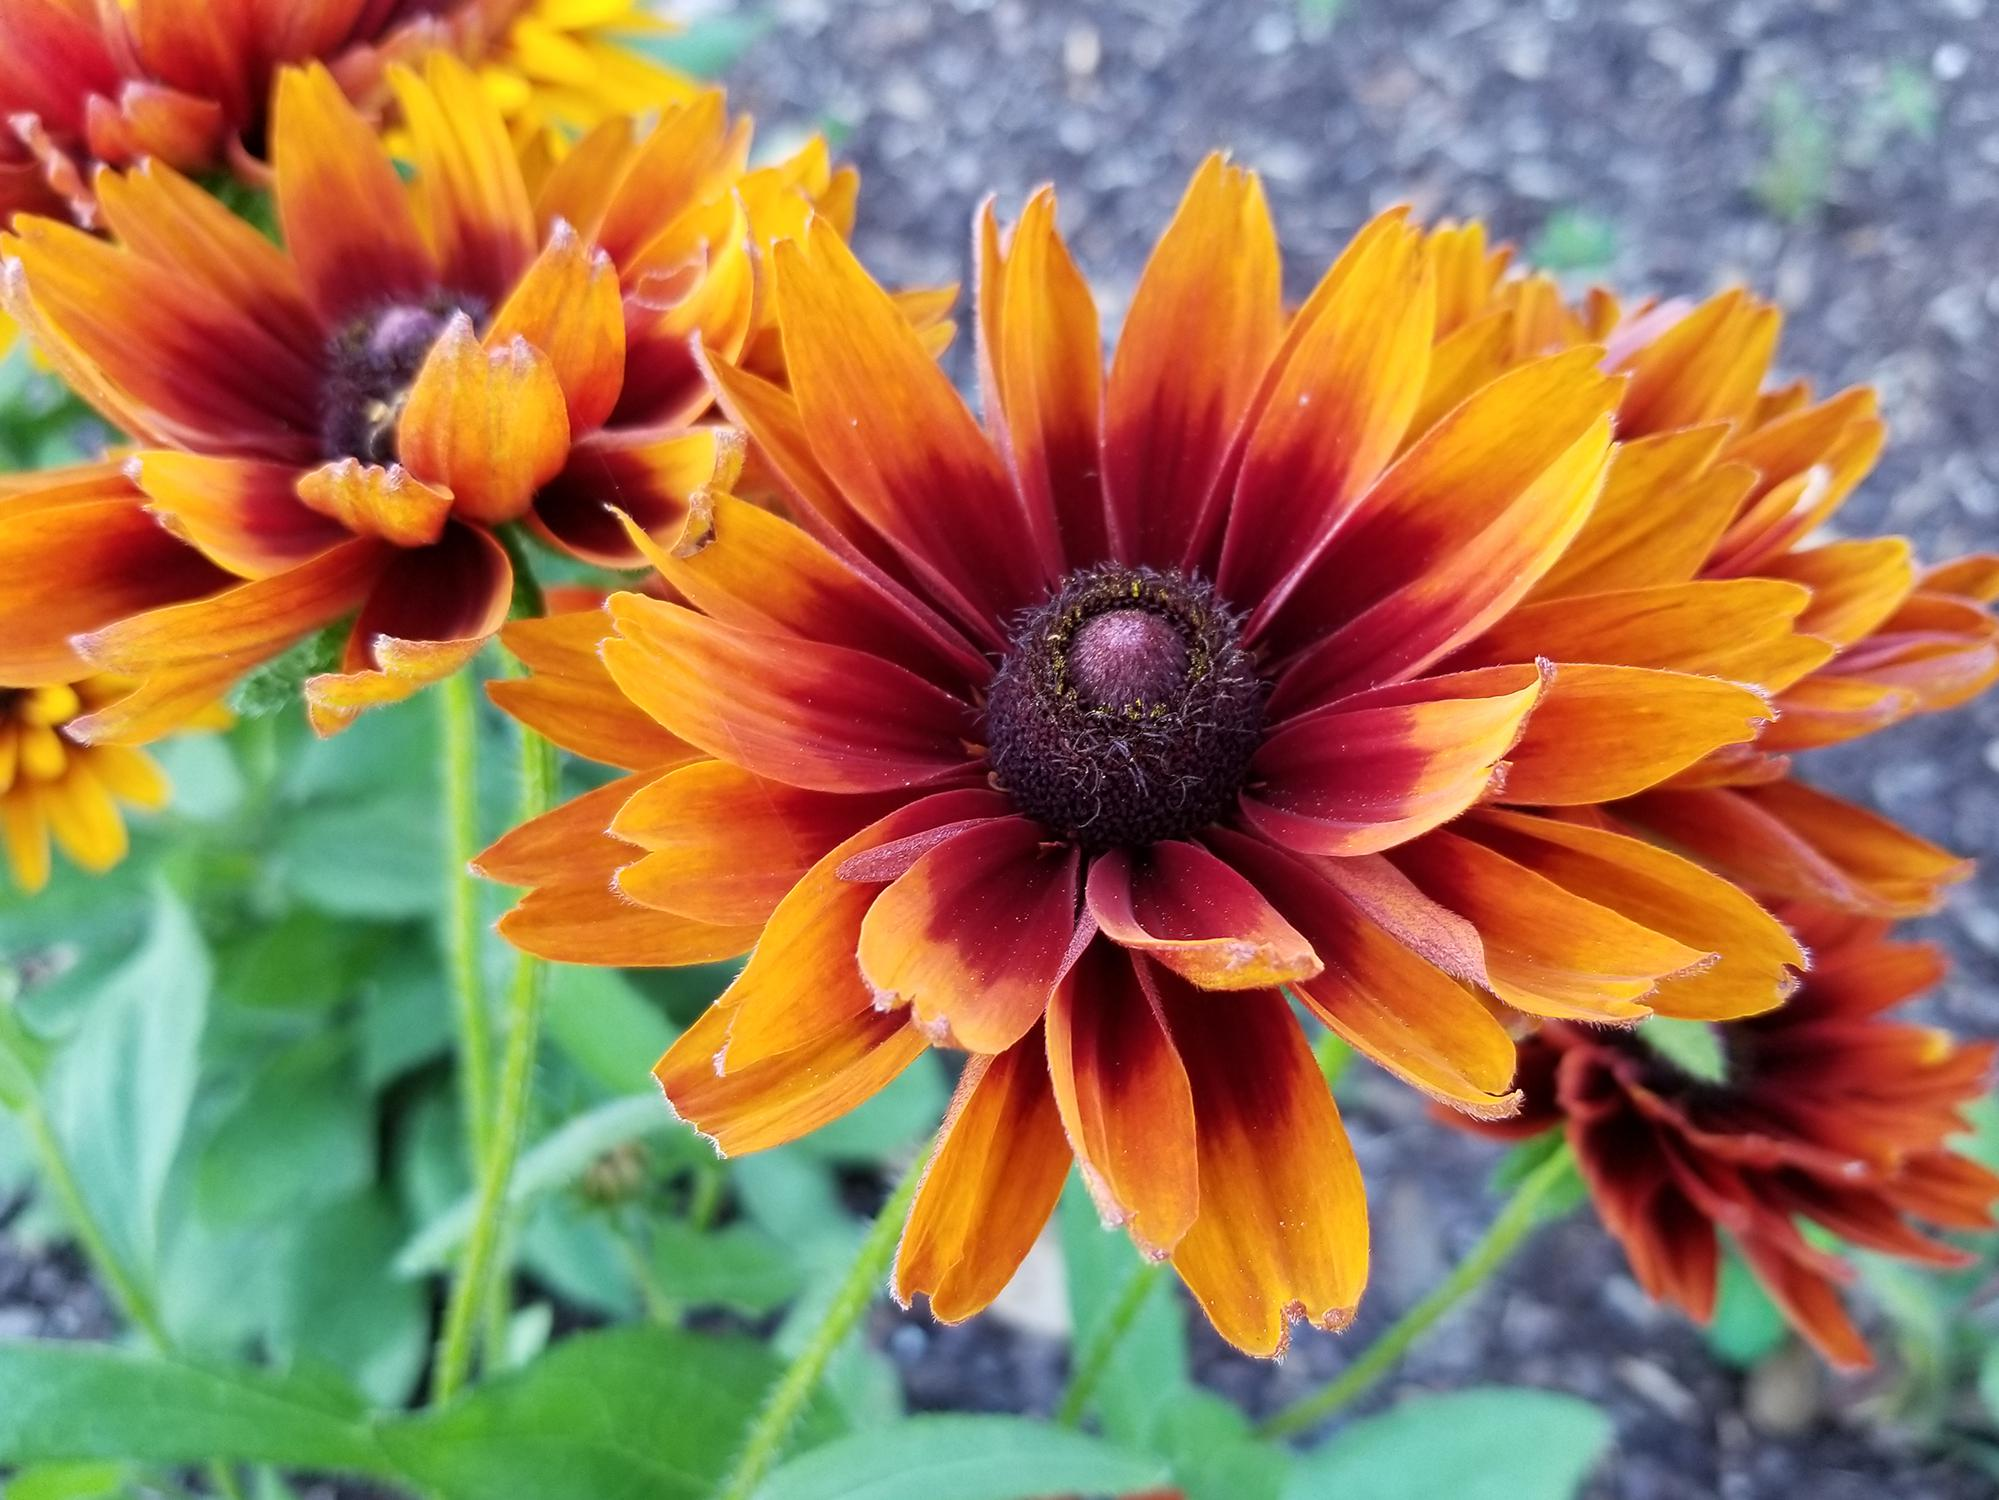 A single, large bloom in orange, red and brown commands the center of this photo, with others of similar color in the background.